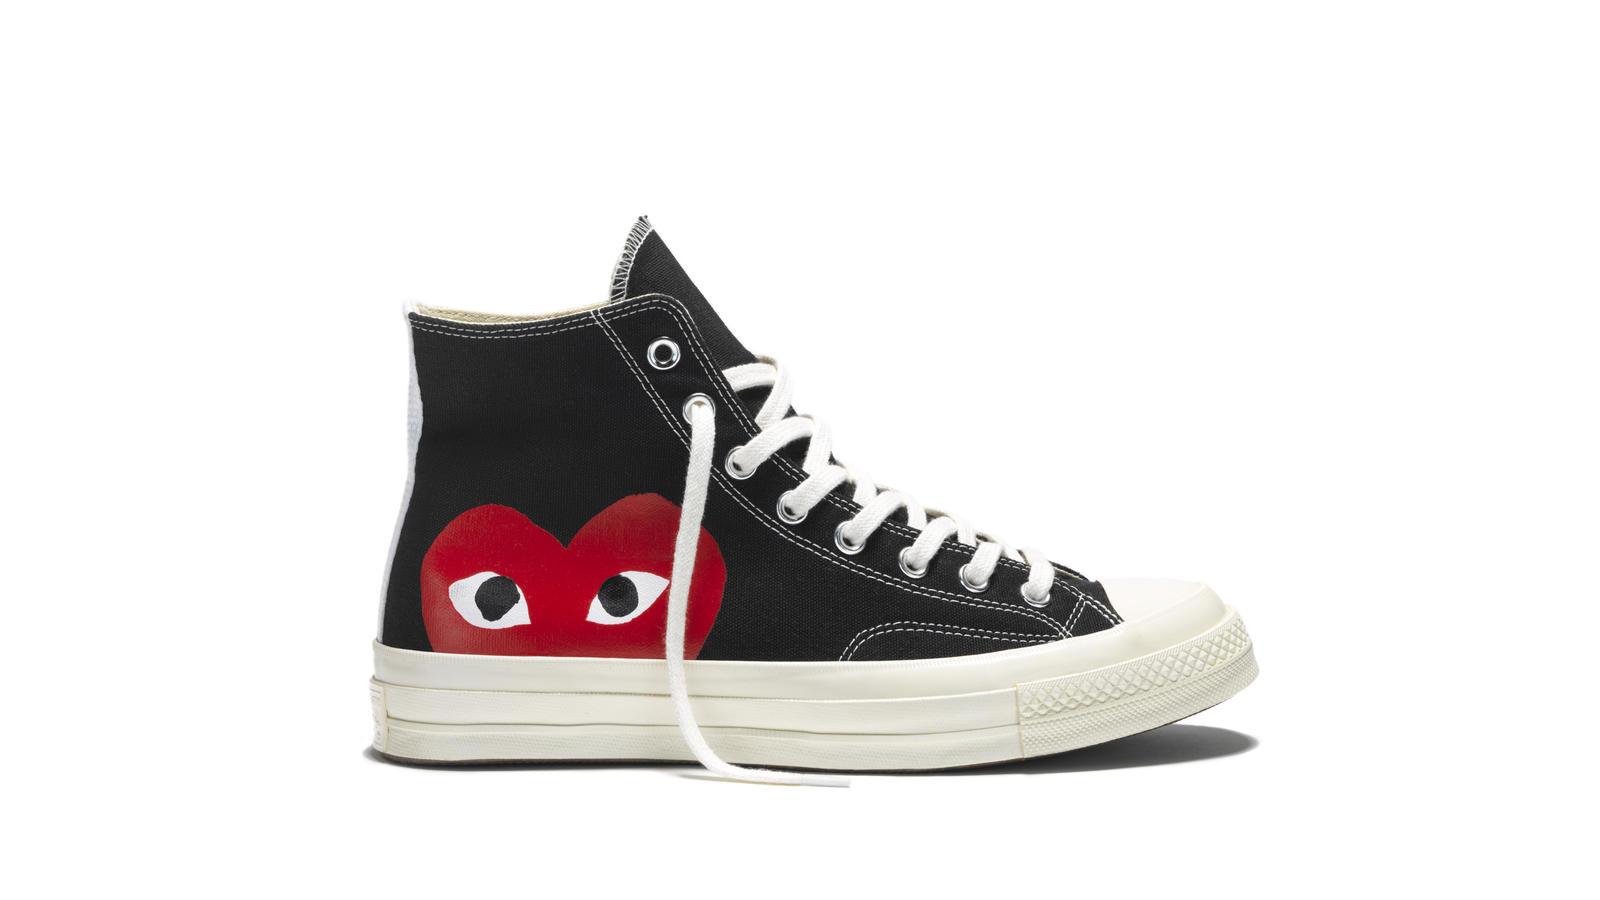 66727abed0a414 Chuck Taylor All Star 70 Play Comme Des Garcons Black High Top Original